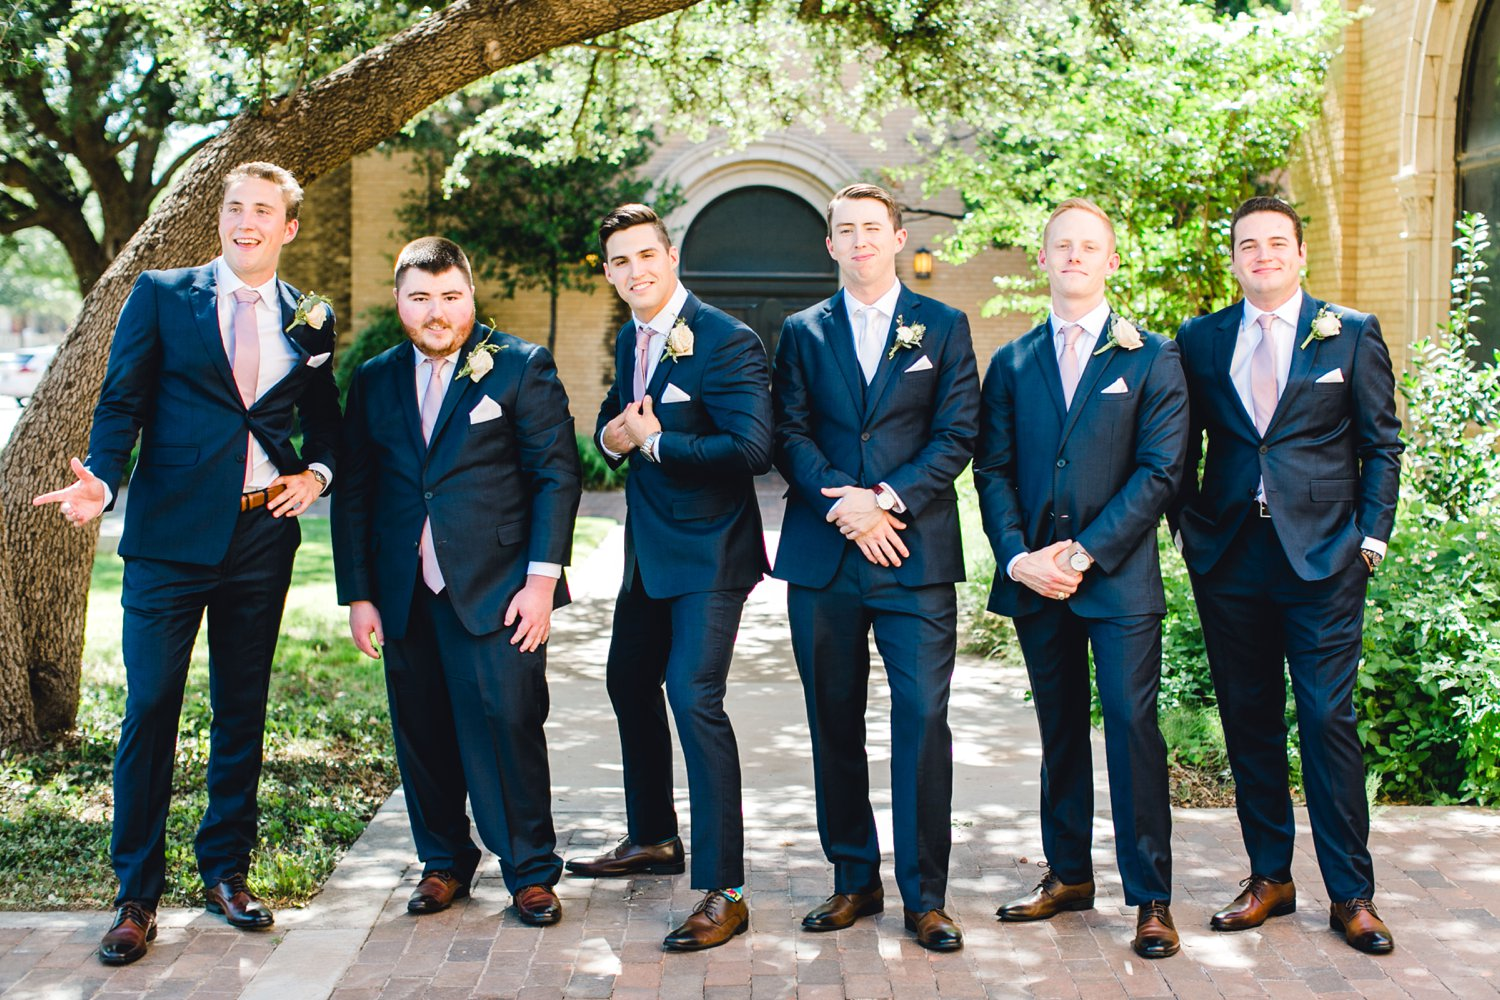 MADI_AND_WILL_STEPHENS_ALLEEJ_LUBBOCK_PHOTOGRAPHER_TEXAS+TECH+FRAZIER_ALUMNI0066.jpg